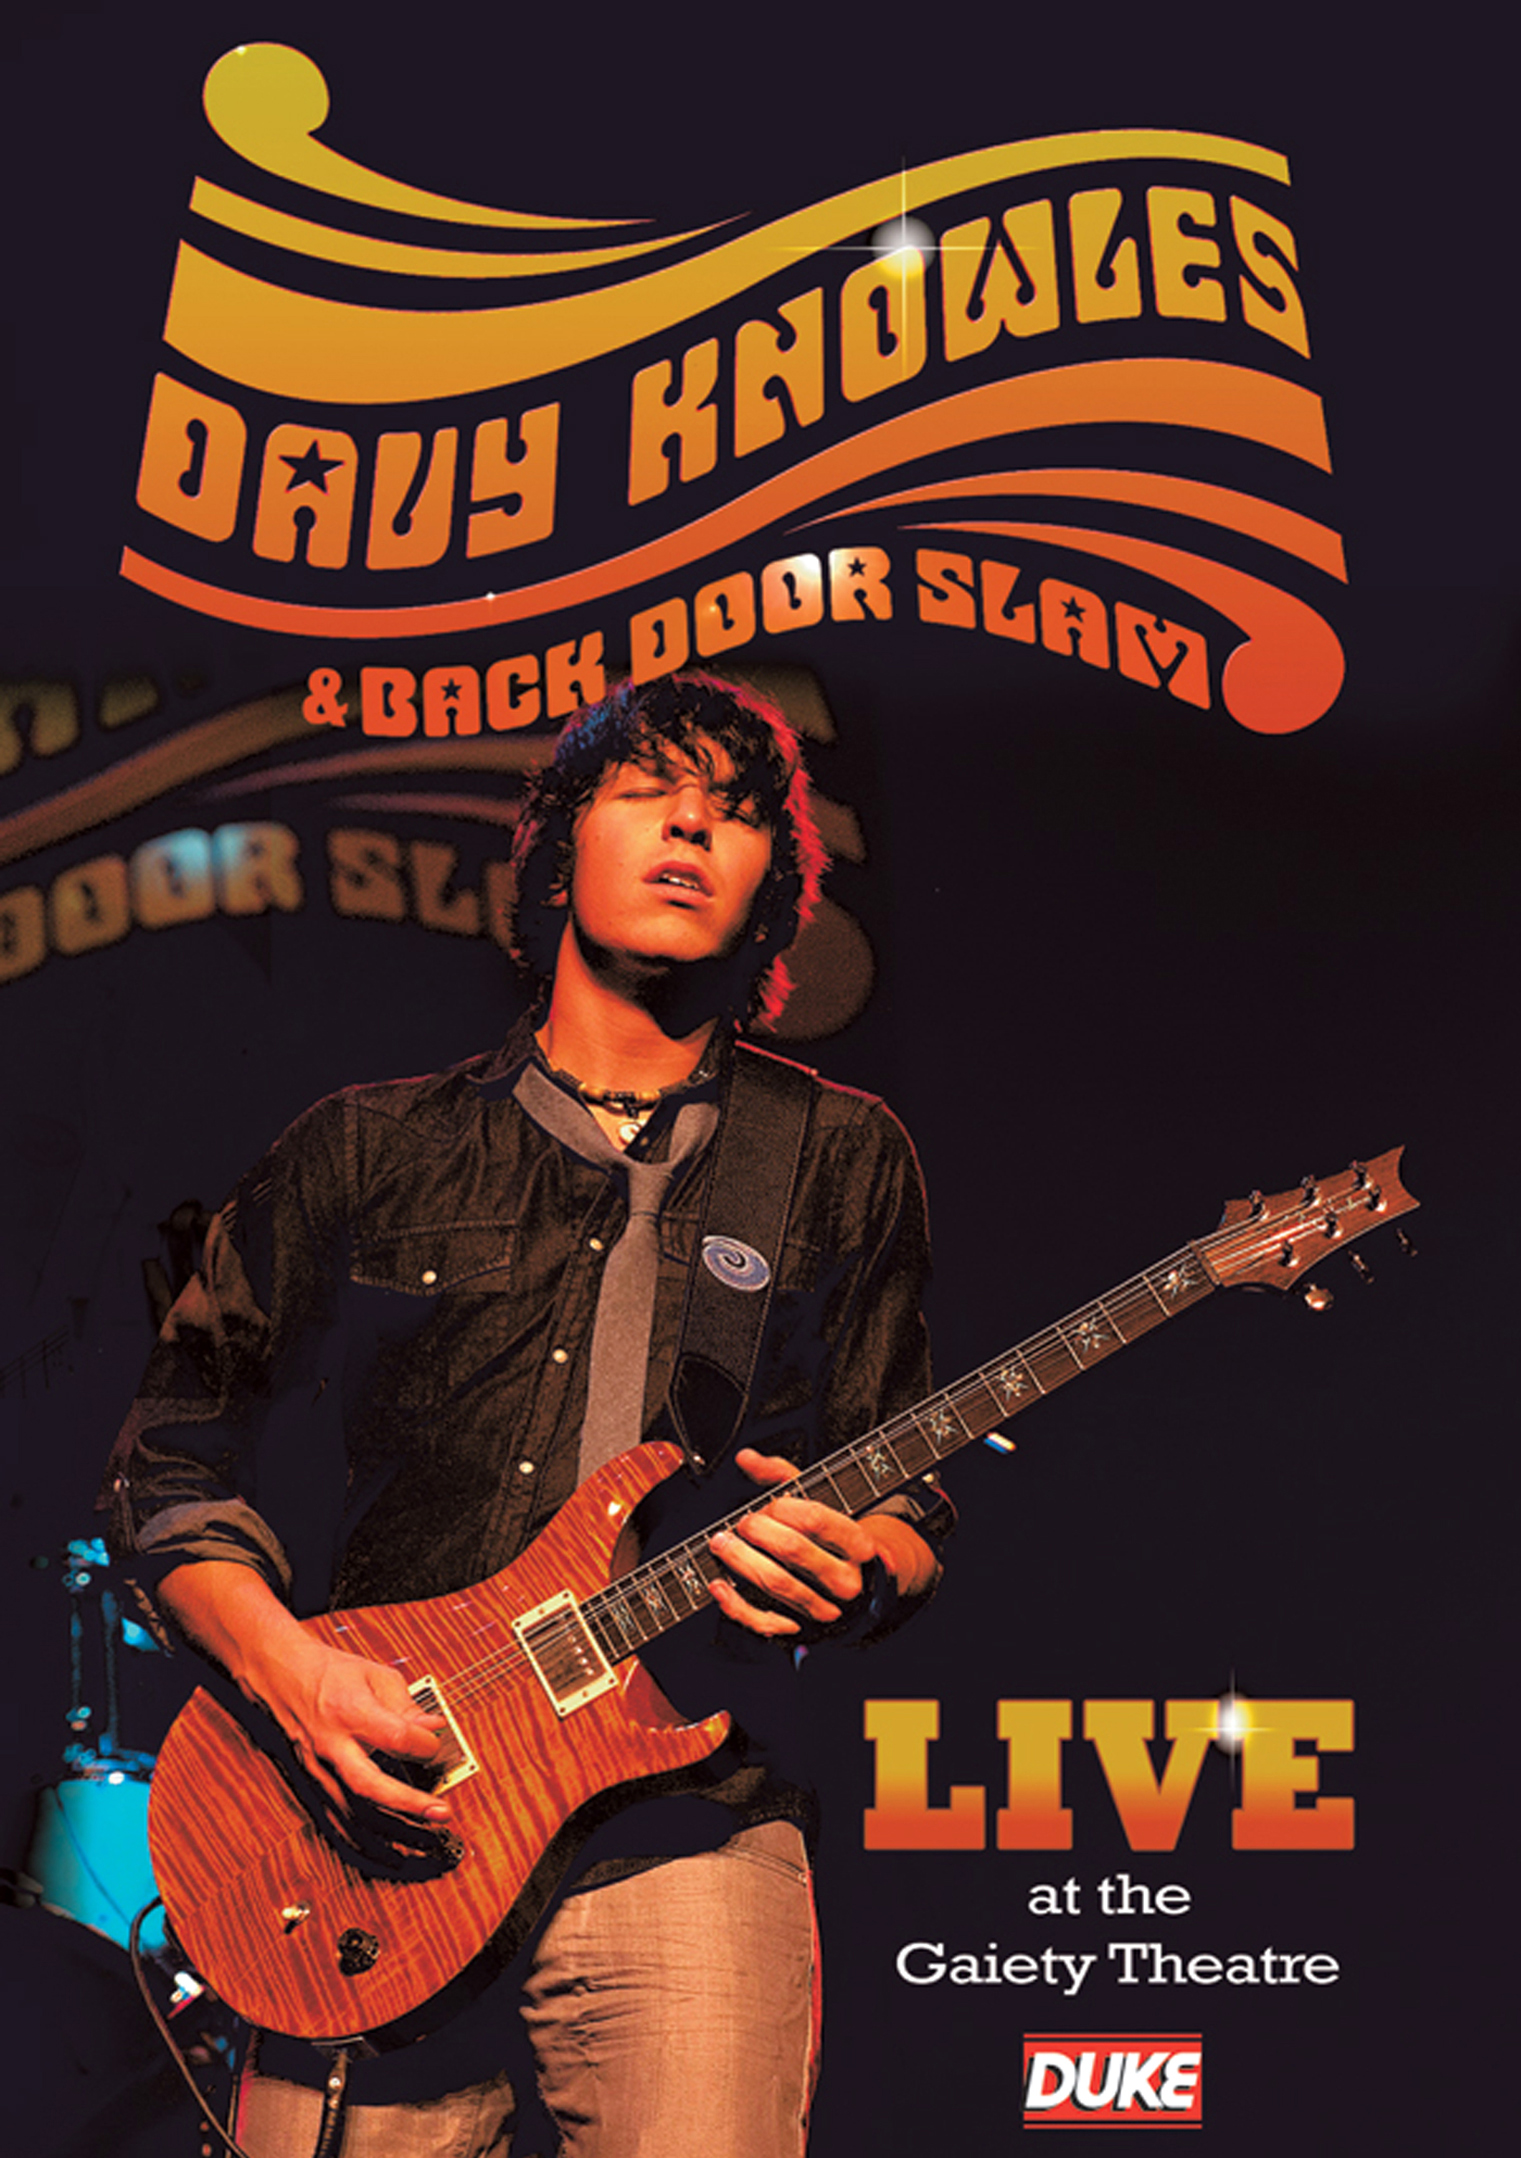 Davy Knowles & Back Door Slam: Live at the Gaiety Theatre